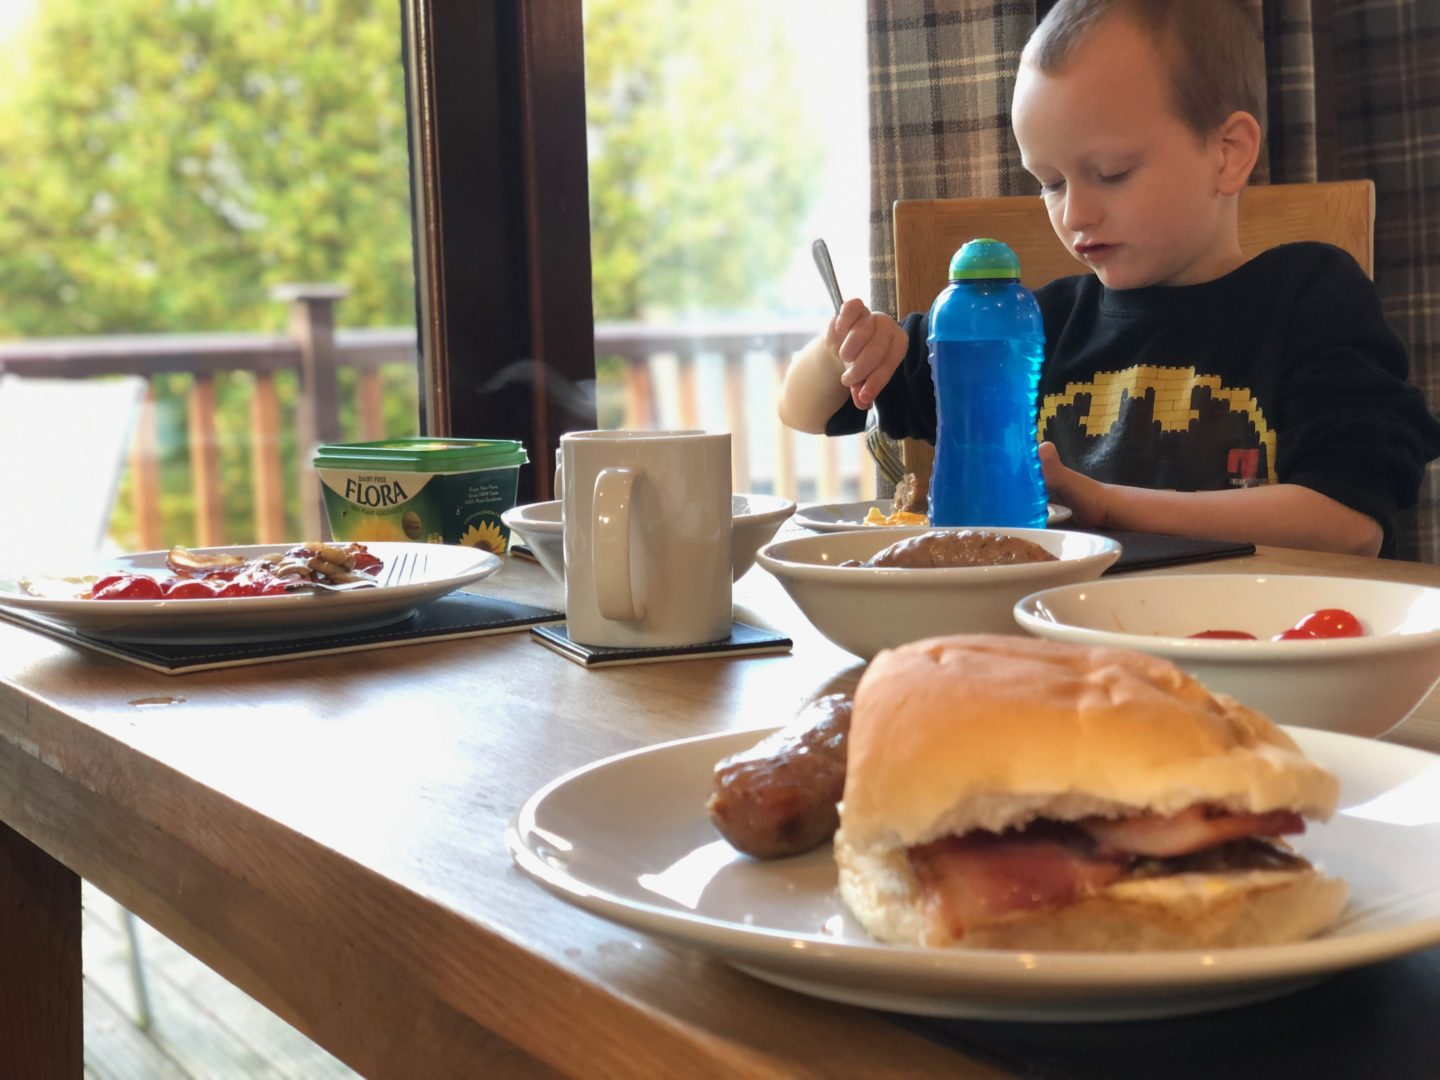 AD: Landal Sandybrook Peak District family review - a relaxing autumnal long weekend break. My son eating his breakfast in the kitchen.